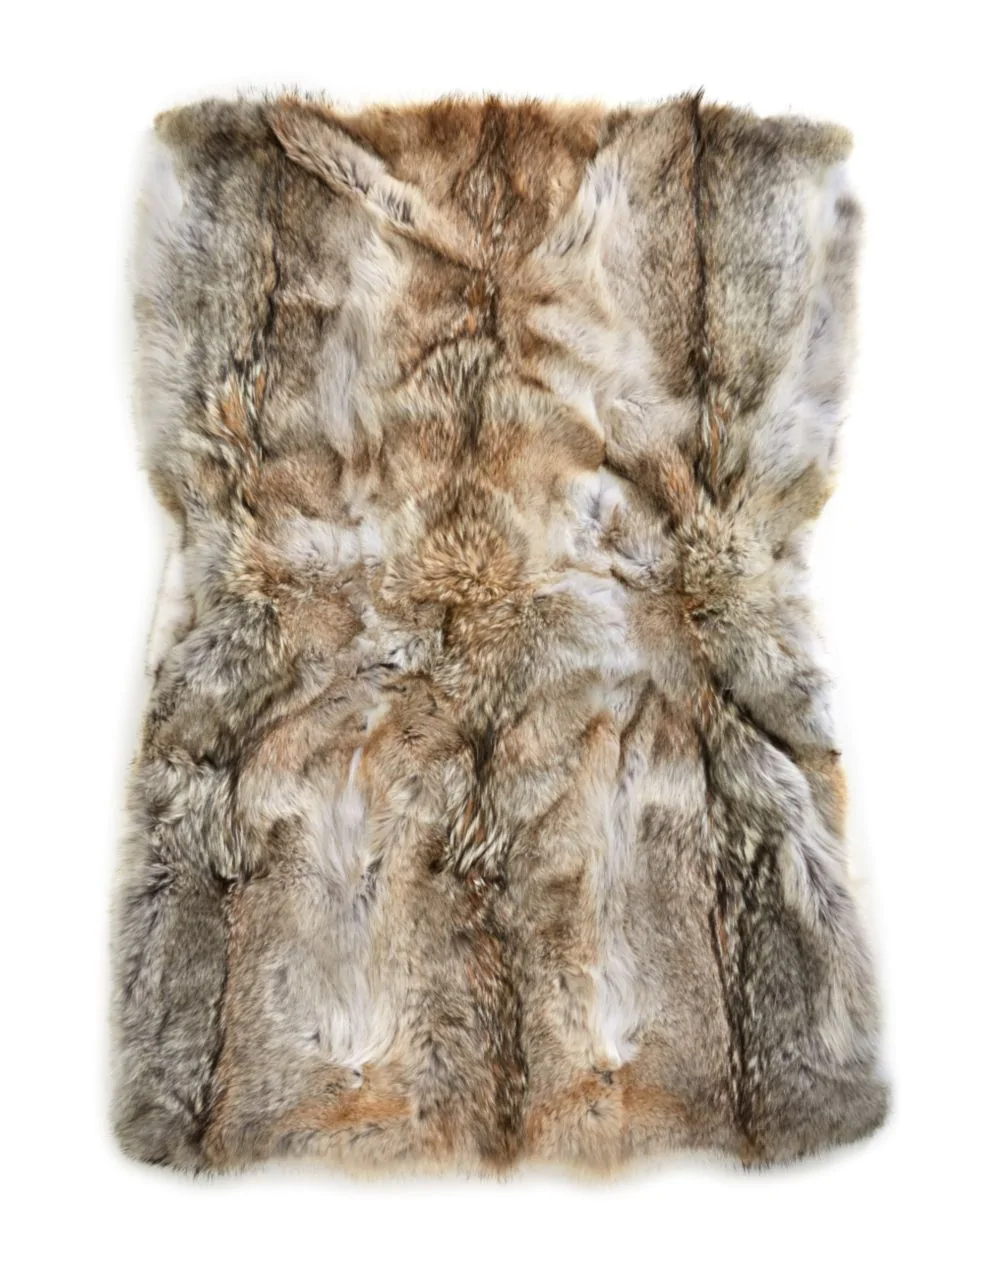 The Bay-Coyote Fur Limited Edition - 3,800 CAD (our splurge item for this list!)